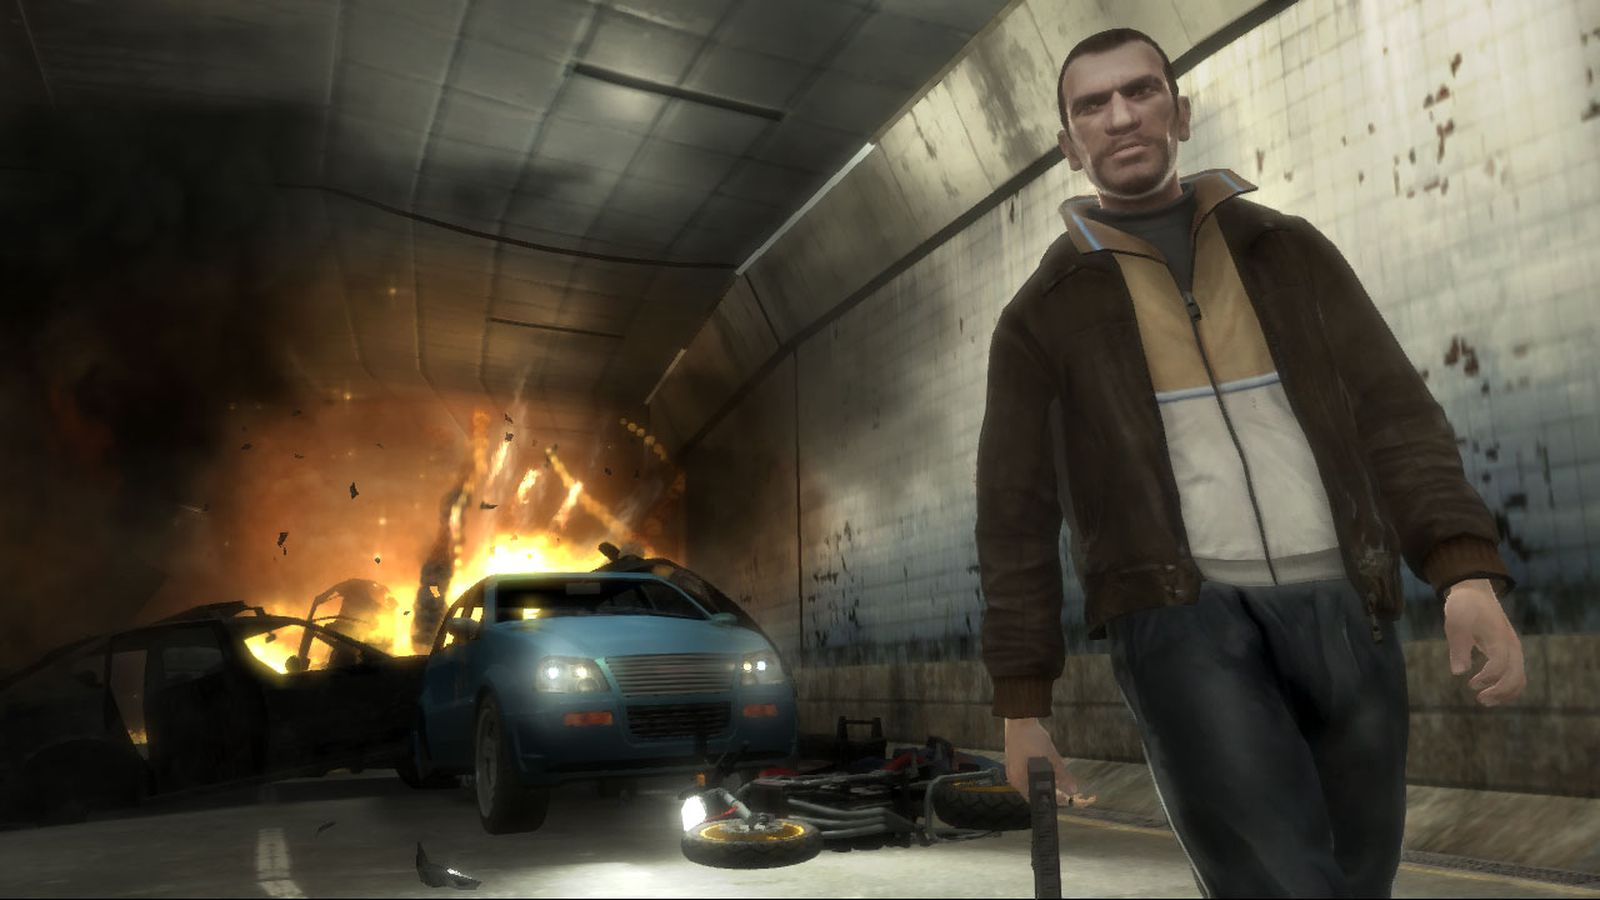 Grand Theft Auto modding tool gets updated, is available again